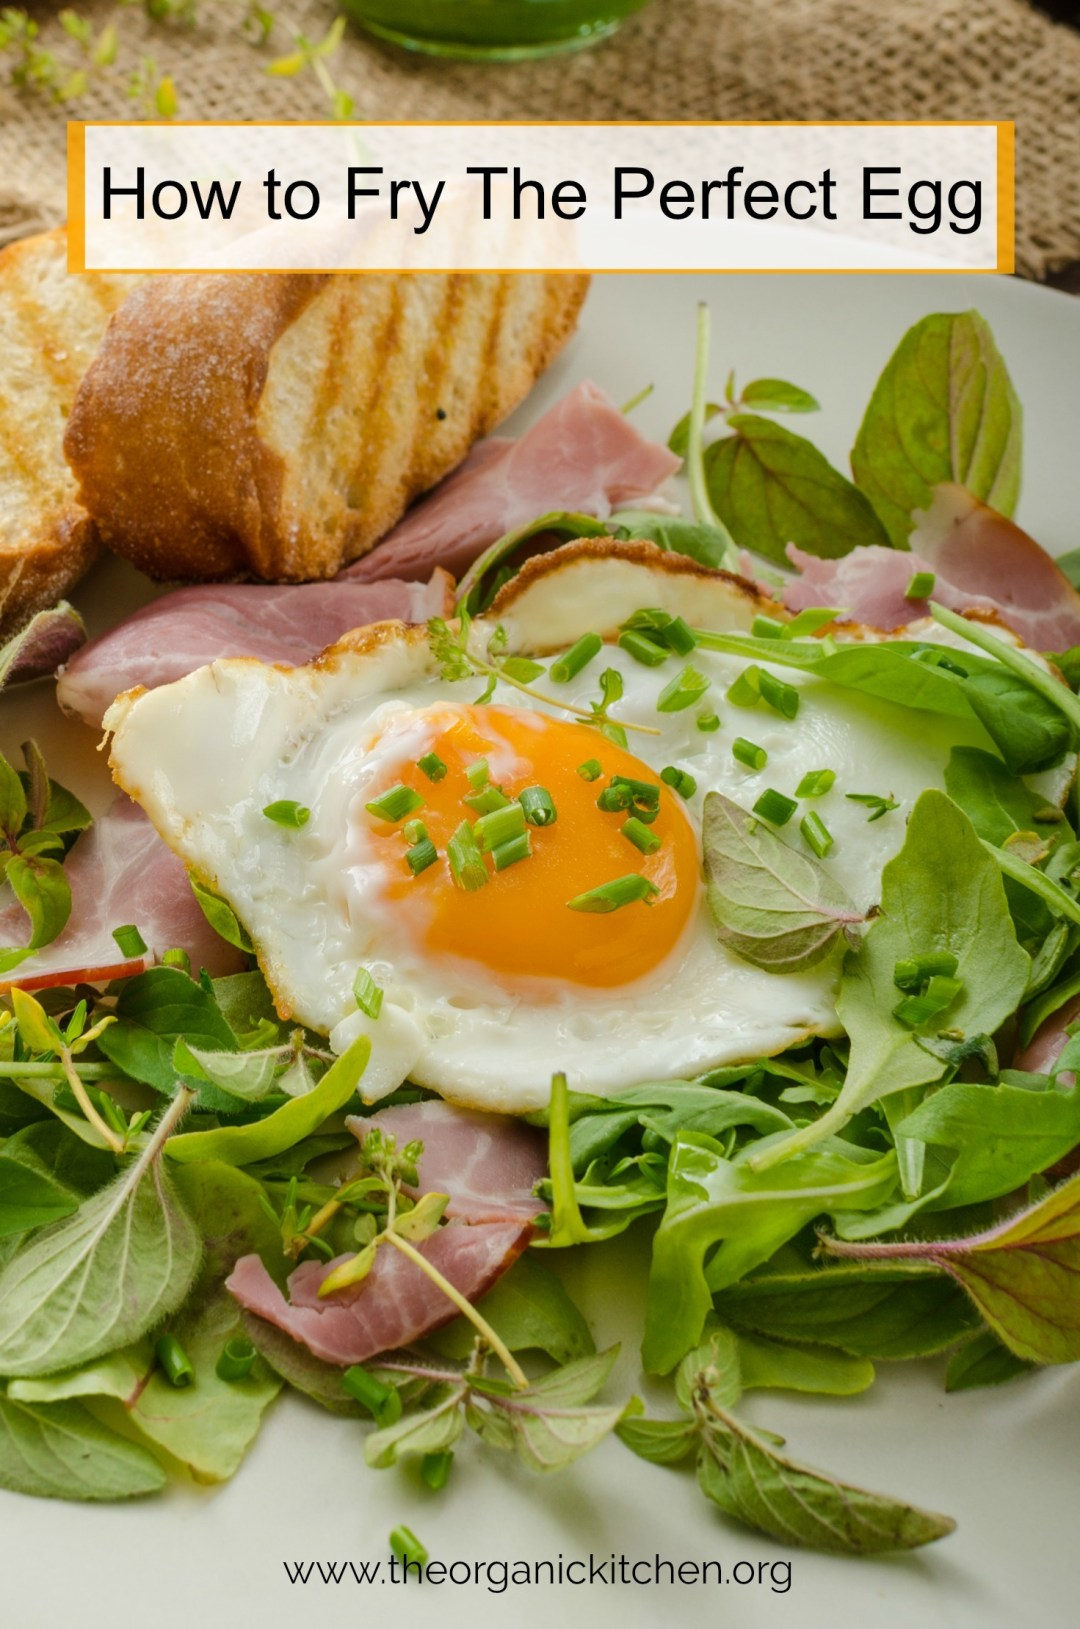 How To Fry the Perfect Egg! #howtofryanegg #paleo #keto #whole30 #howto